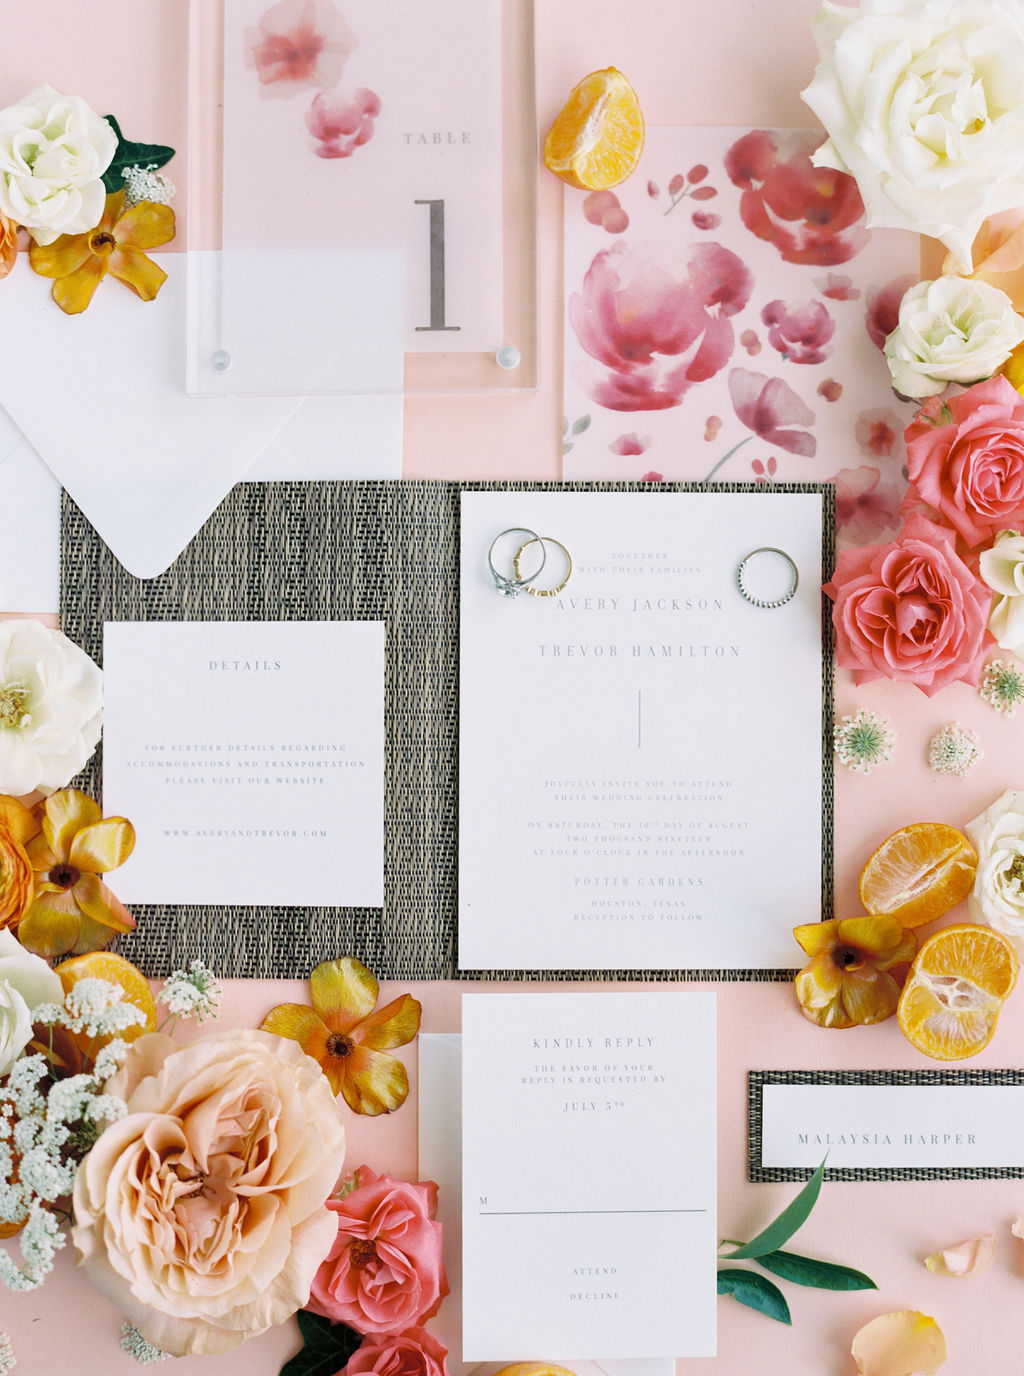 Houston, TX. Floral & Event Design: Maxit Flower Design, Photography:  Courtney Leigh Photography  Paper Product:  Memory Lane Paperie